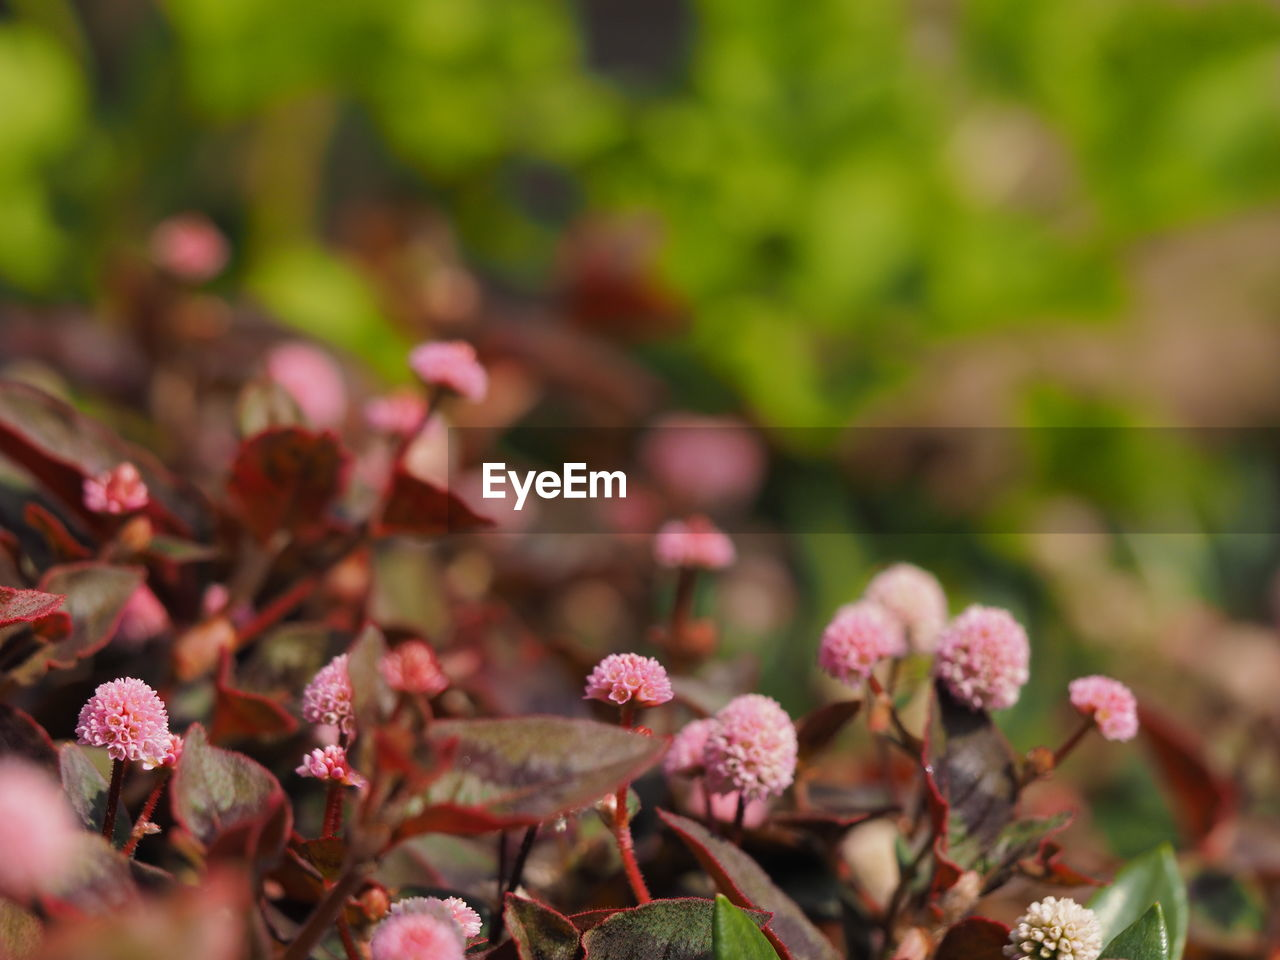 beauty in nature, plant, growth, flower, flowering plant, selective focus, close-up, fragility, vulnerability, freshness, pink color, day, nature, no people, plant part, petal, leaf, outdoors, focus on foreground, botany, flower head